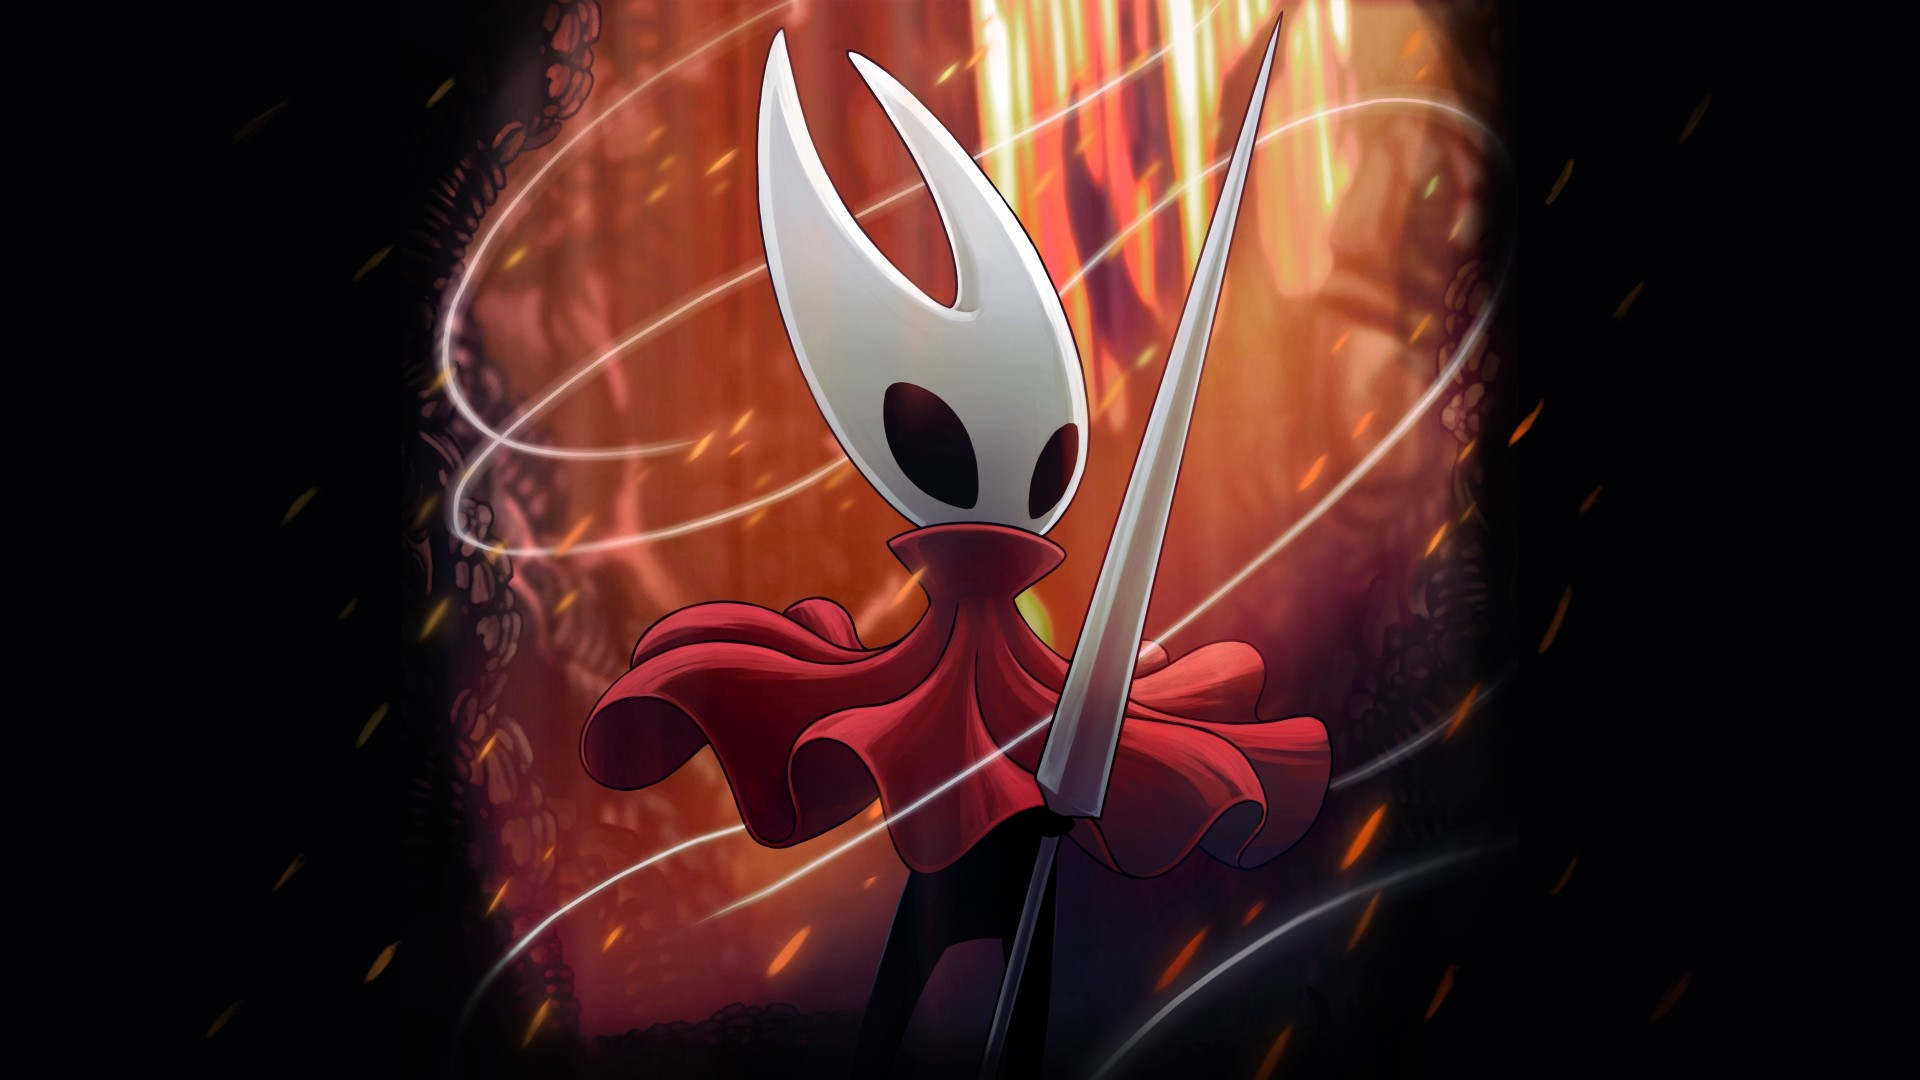 Hollow Knight Image